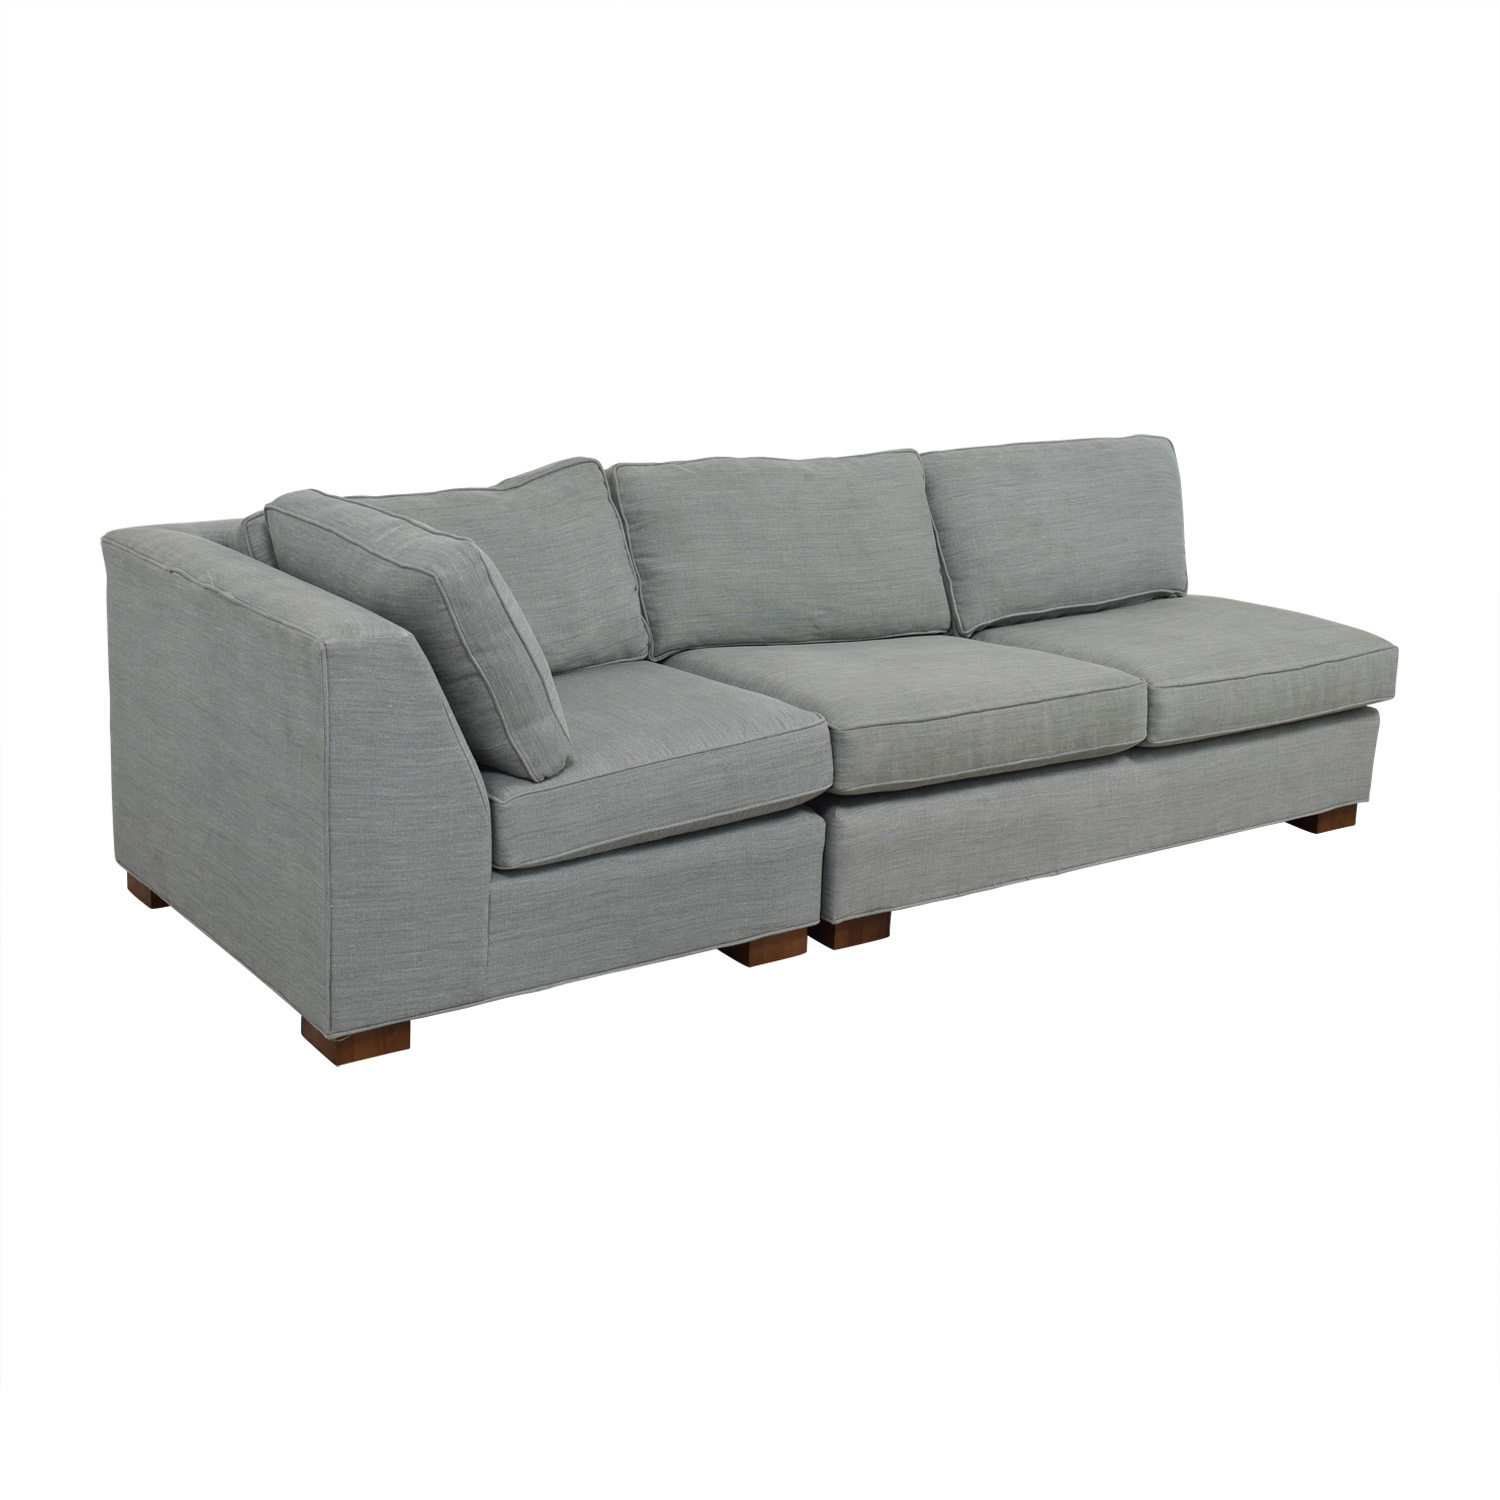 Mitchell Gold + Bob Williams Mitchell Gold + Bob Williams Gray Three-Cushion One Armed Sofa price